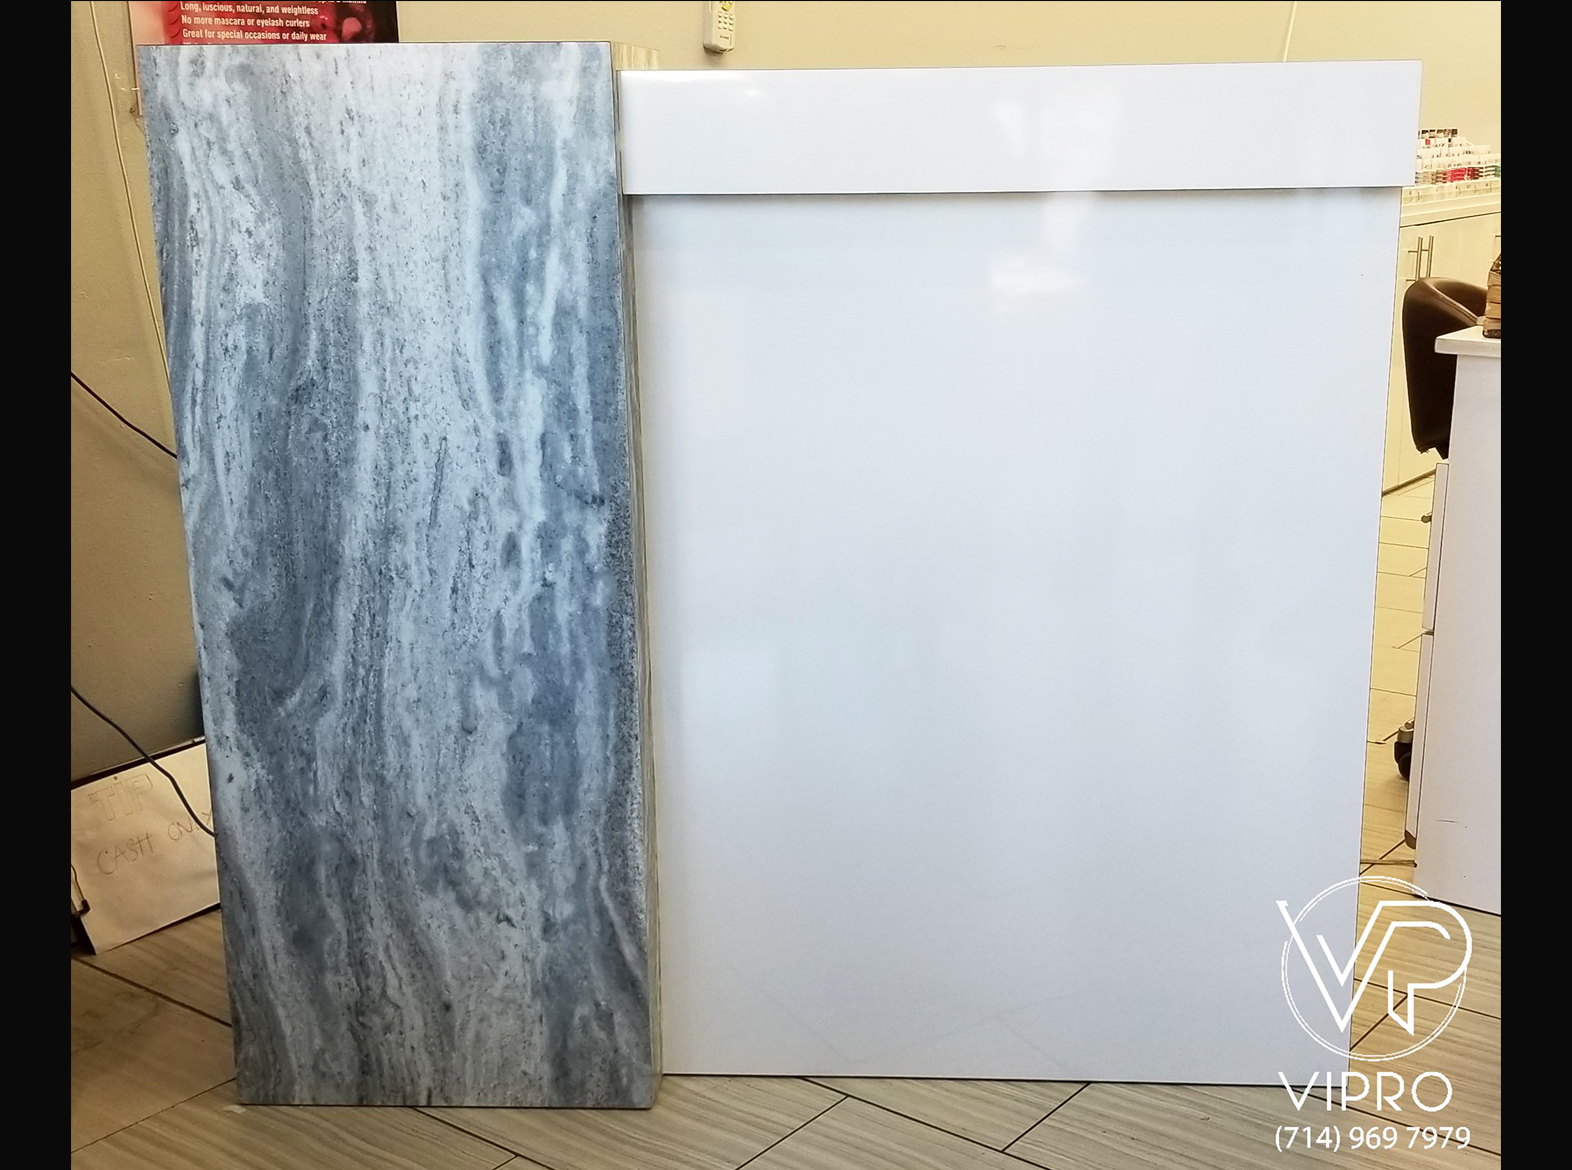 Reception Desk with Stone Formica